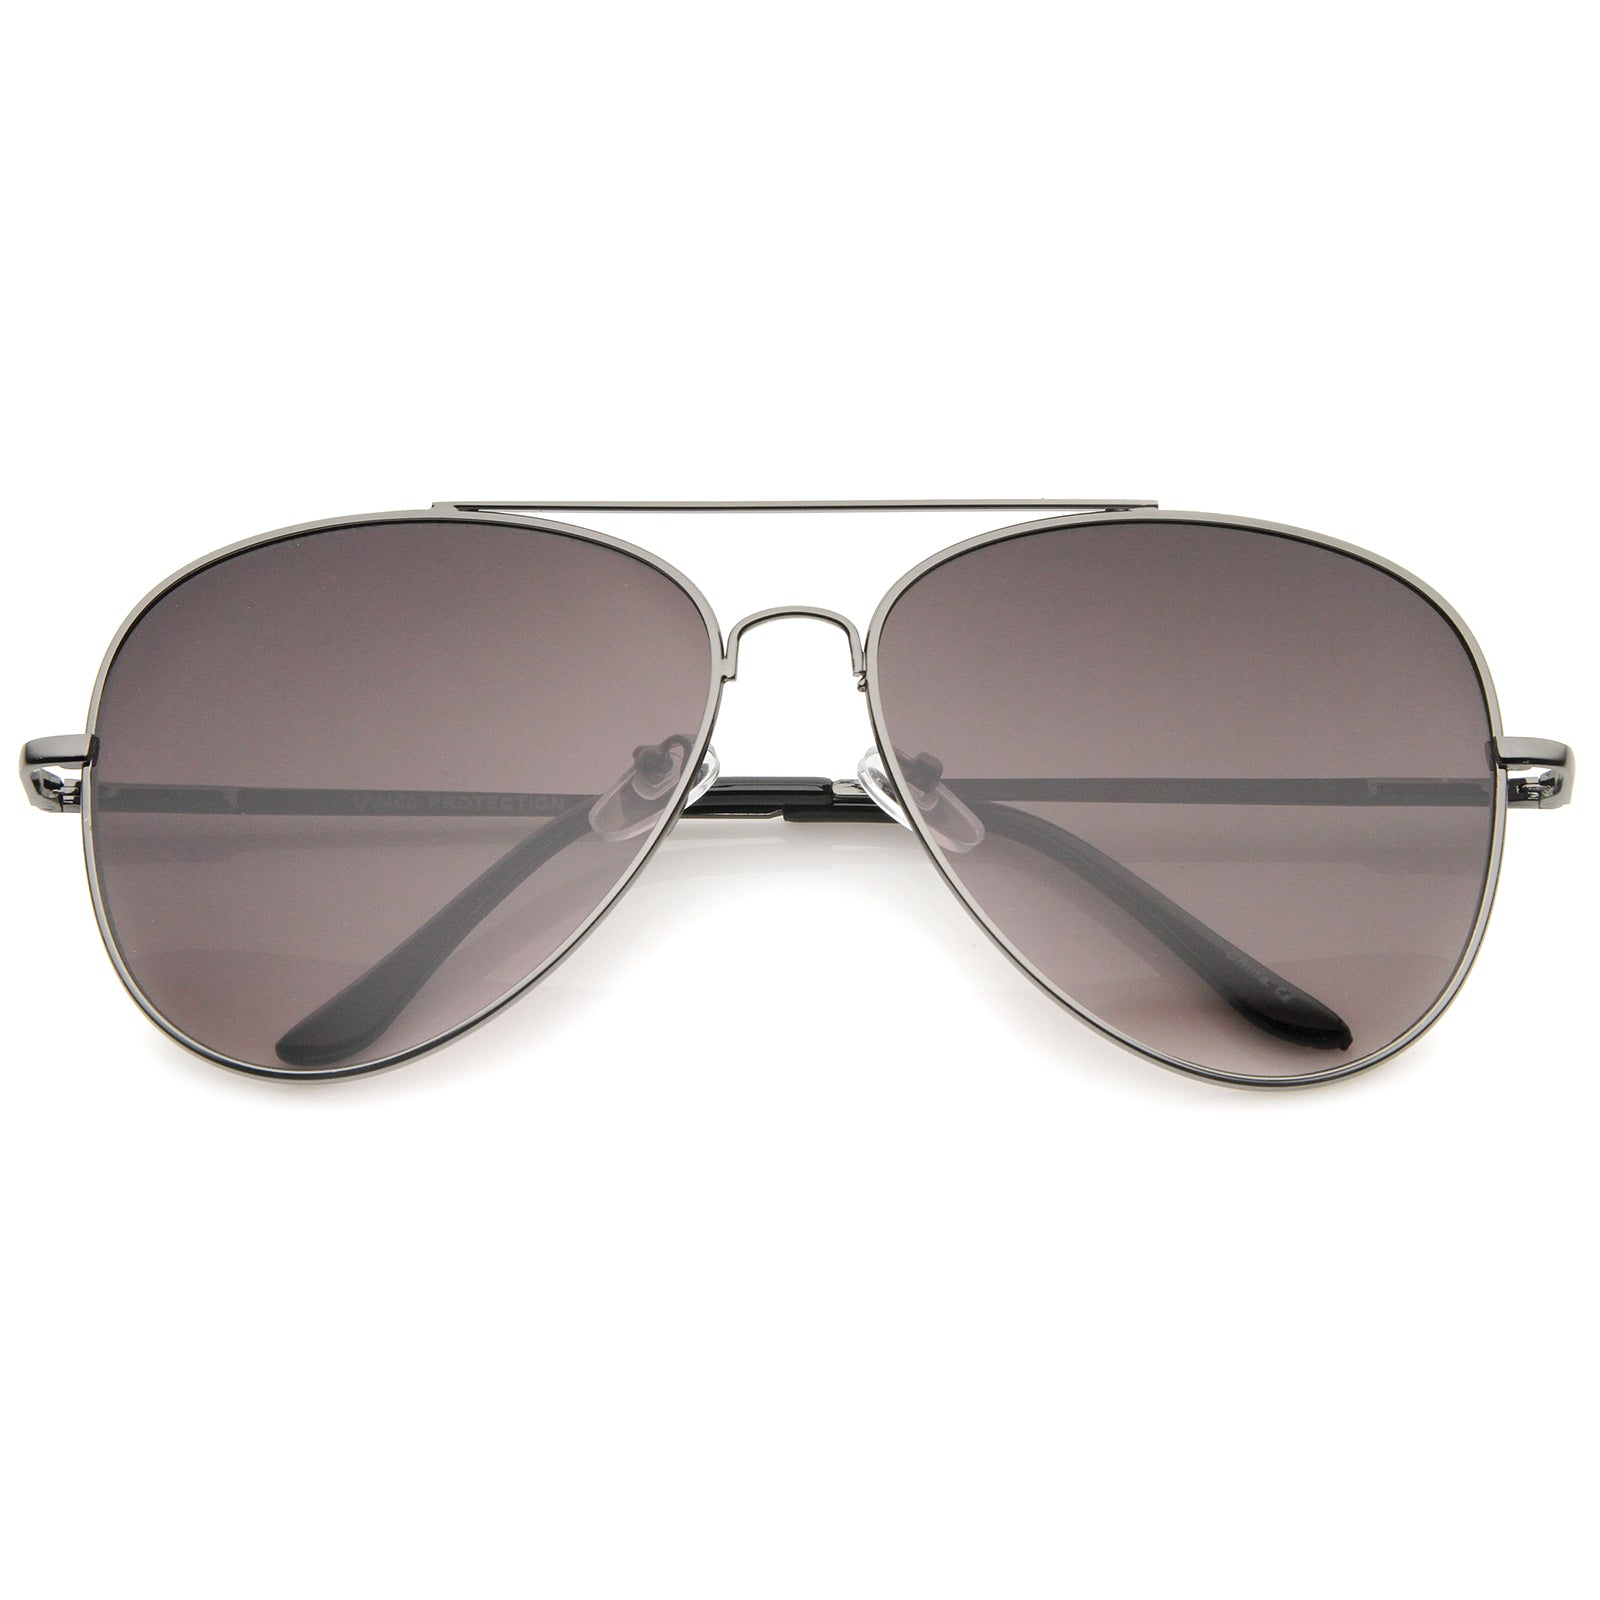 Large Classic Full Metal Teardrop Flat Lens Aviator Sunglasses 60mm - sunglass.la - 7